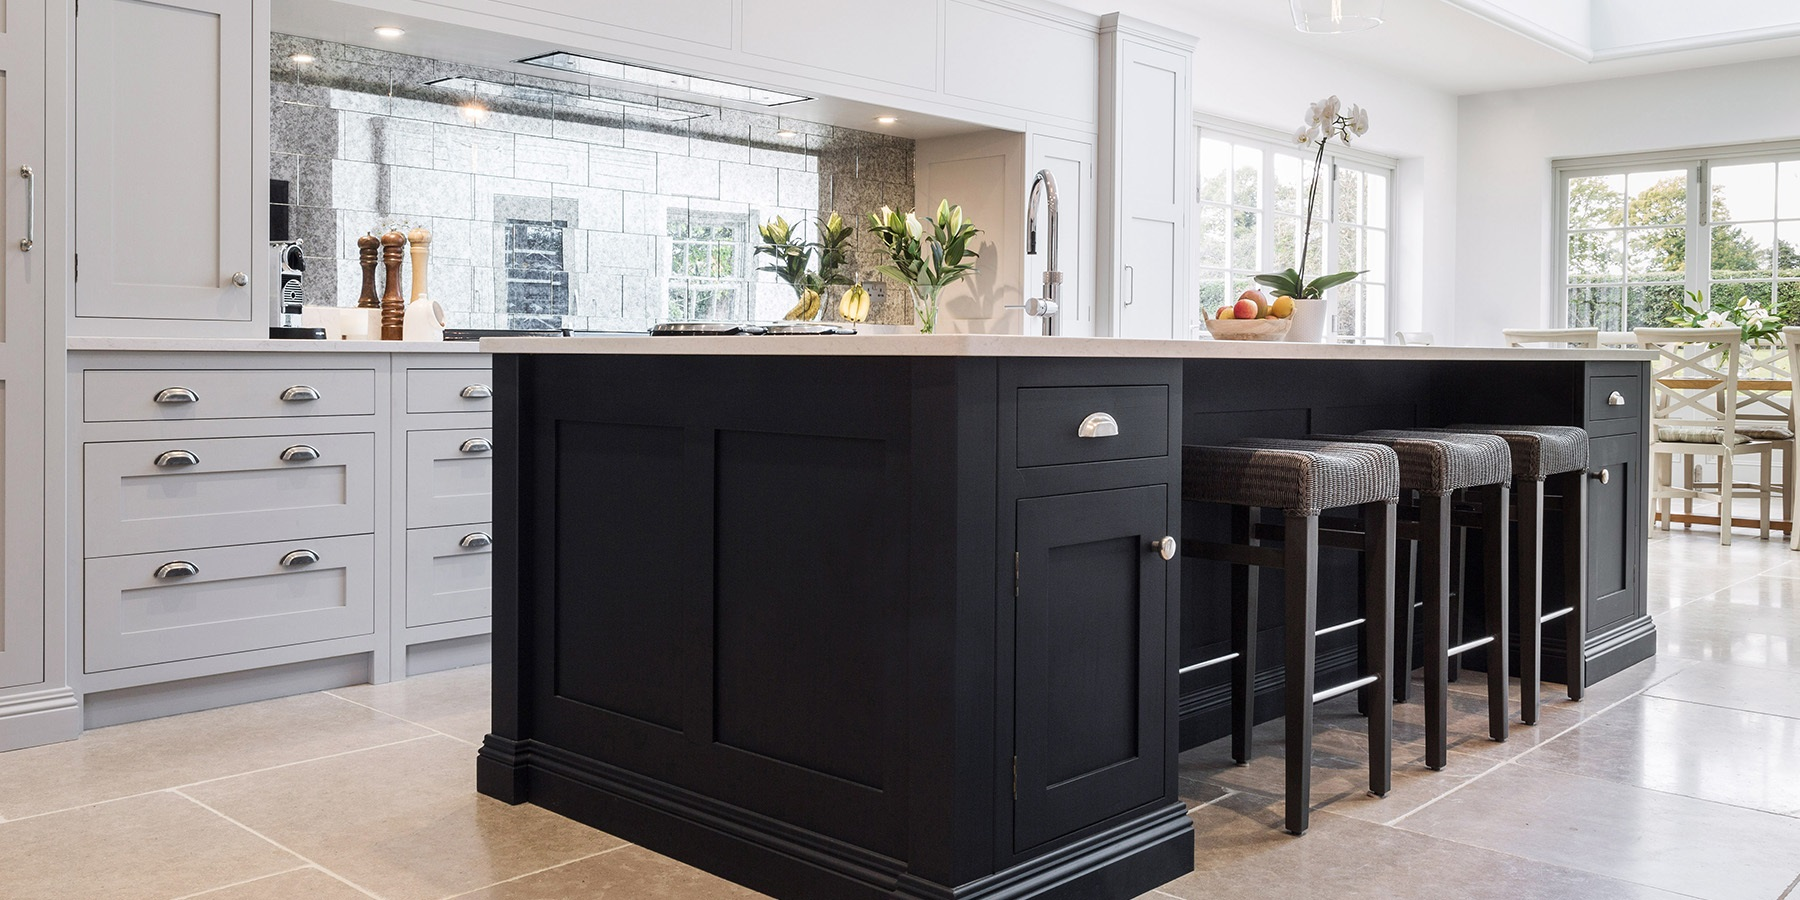 Burlanes Bespoke Kitchen With Ca'Pietra Stone Flooring - Burlanes bespoke Wellsdown kitchen with beautiful Ca'Pietra stone flooring and tiles.